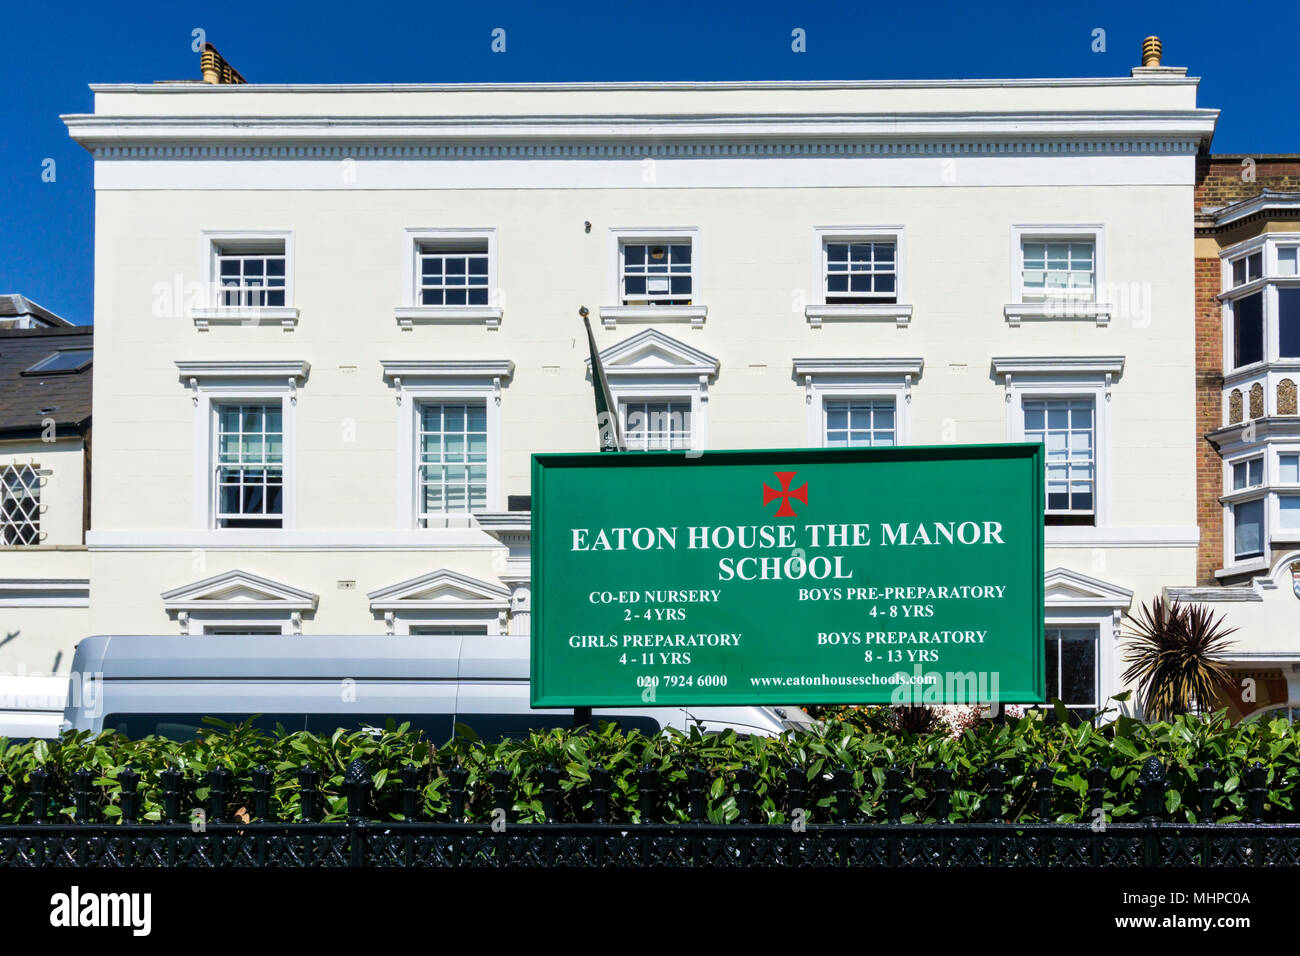 Sign for The Manor, one of the Eaton House group of schools.  On Clapham Common North Side. - Stock Image